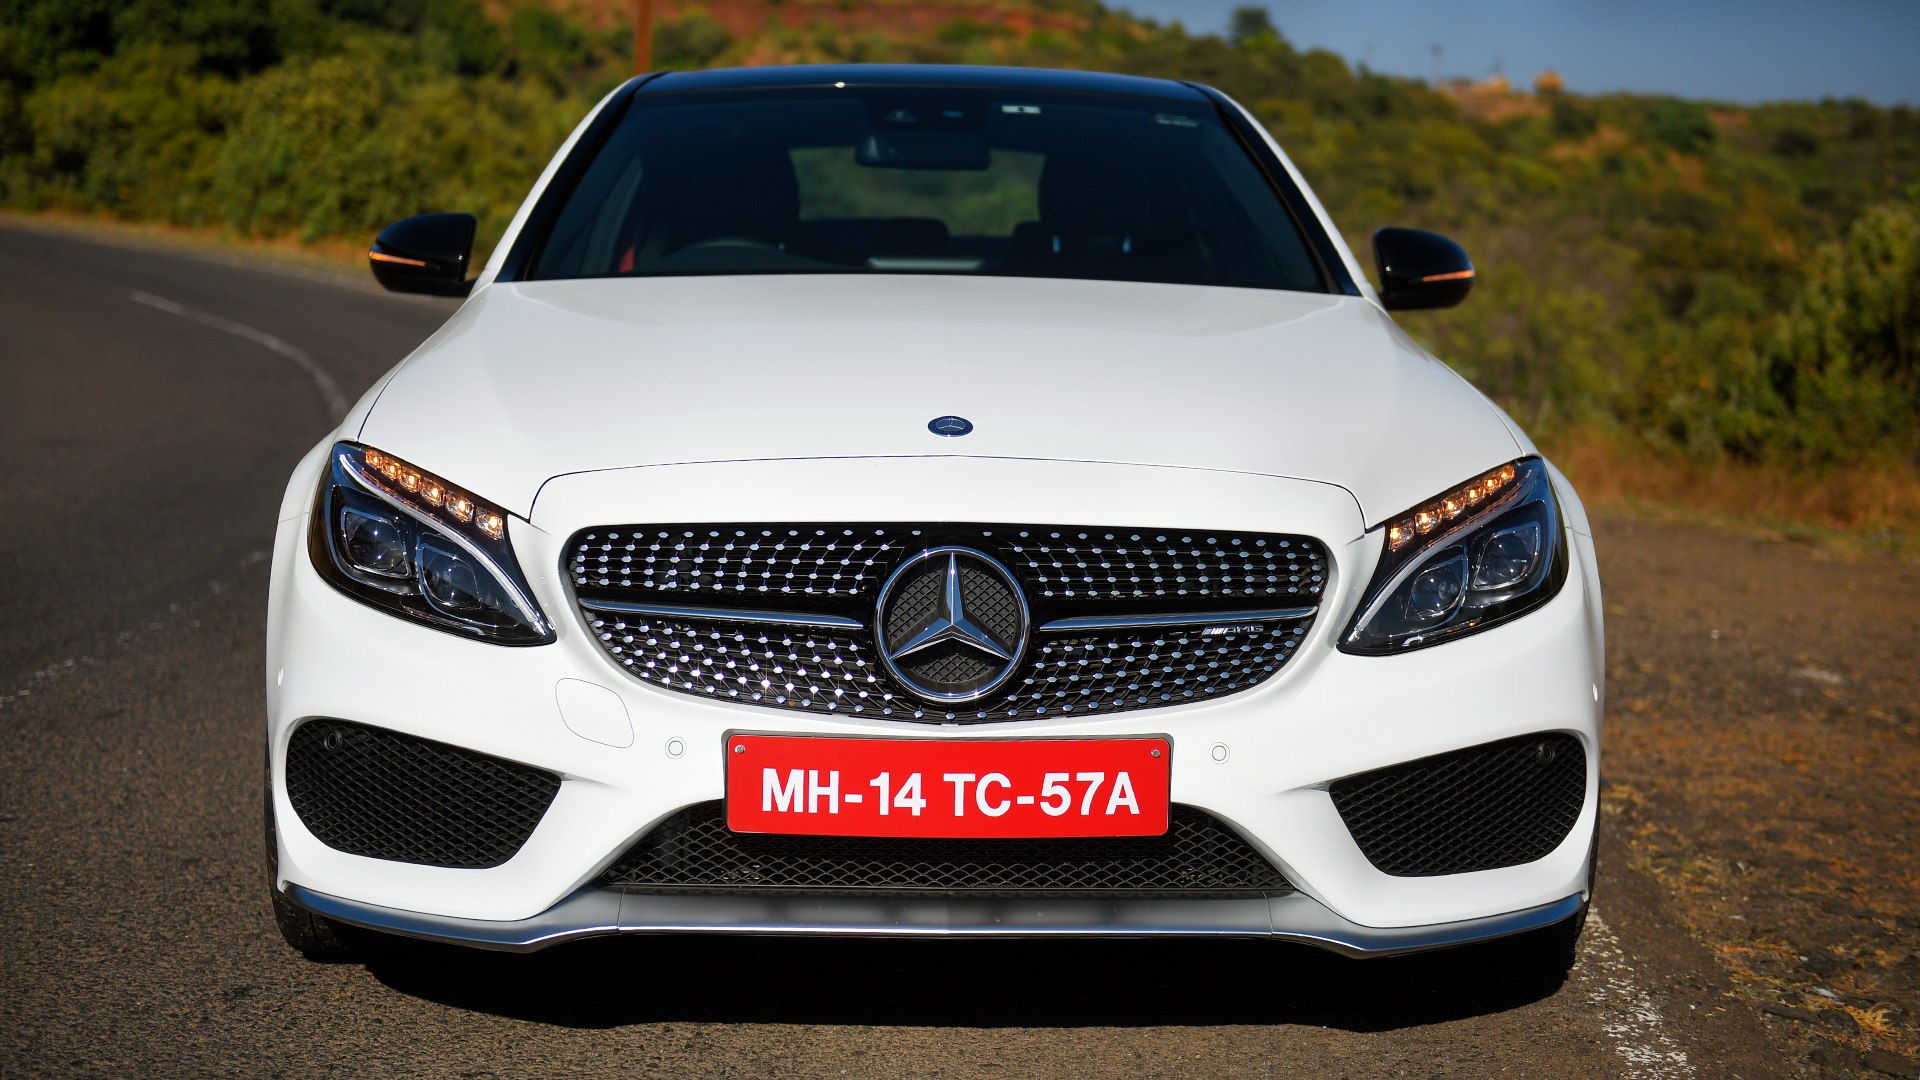 Mercedes Benz C43 2017 AMG Compare